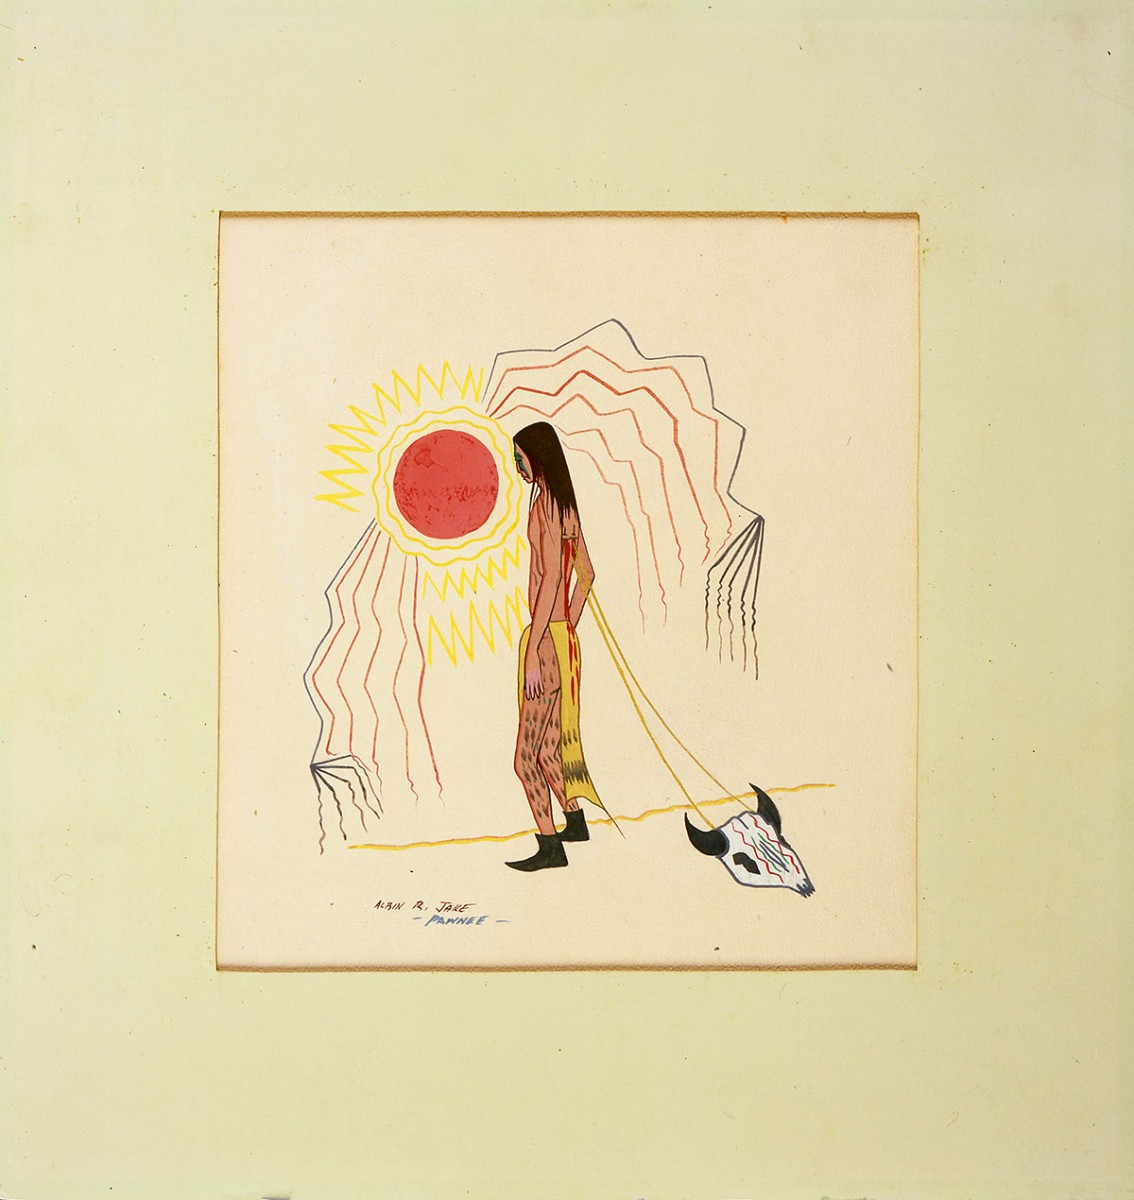 Albin R. Jake. Untitled (Sun Dance Ritual). Gouache on paperboard, 14.5 x 13.75 inches. Gift of Anne T. Black, Lame Deer, MT. 32.71